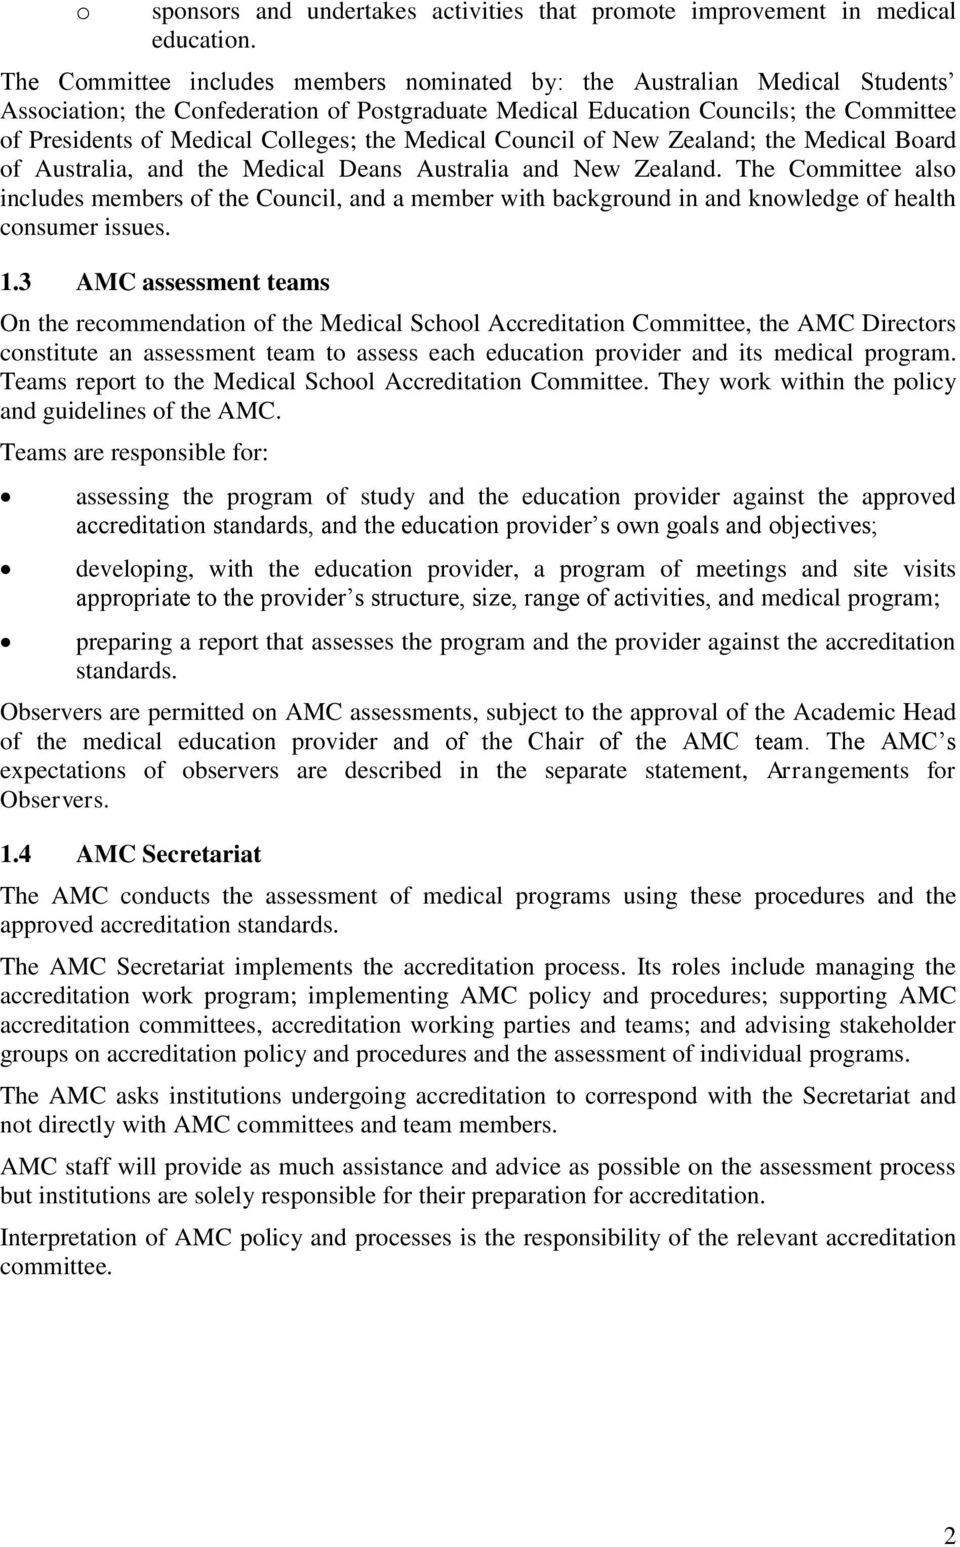 Colleges; the Medical Council of New Zealand; the Medical Board of Australia, and the Medical Deans Australia and New Zealand.